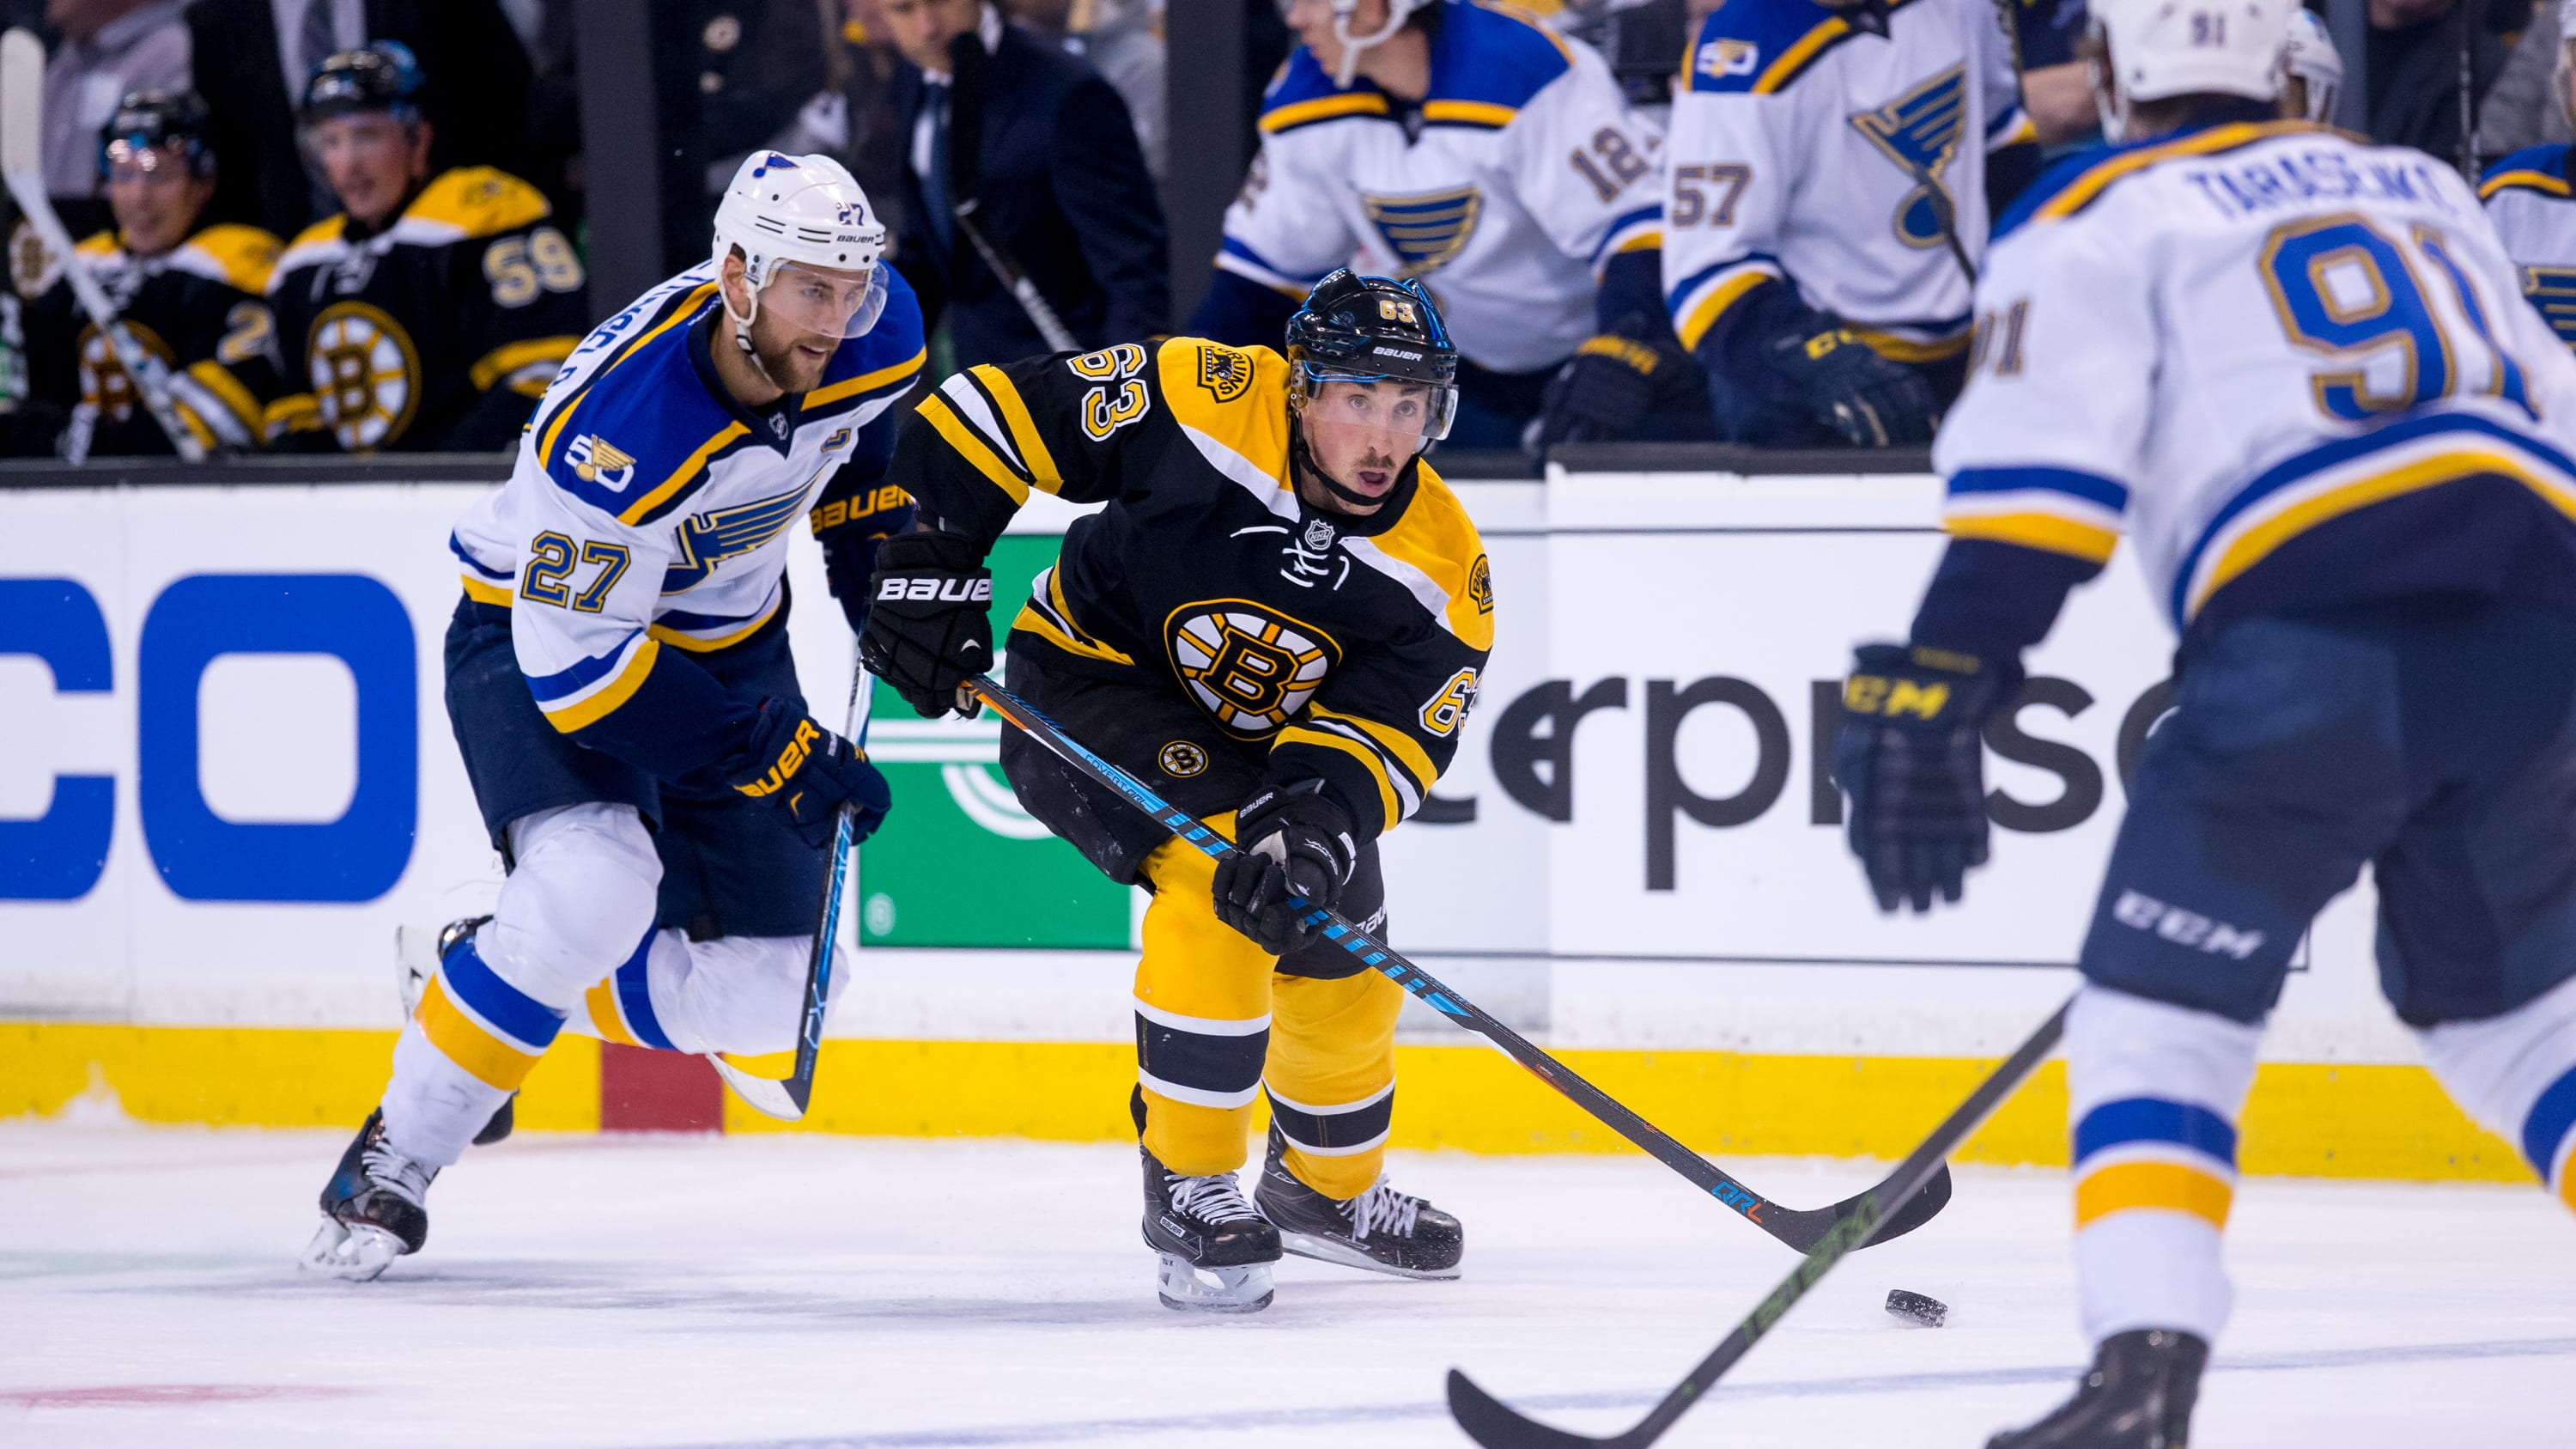 BOSTON, MA - NOVEMBER 22: Brad Marchand #63 of the Boston Bruins controls the puck against the St. Louis Blues during the first period at TD Garden on November 22, 2016 in Boston, Massachusetts. The Blues won 4-2. (Photo by Rich Gagnon/Getty Images)